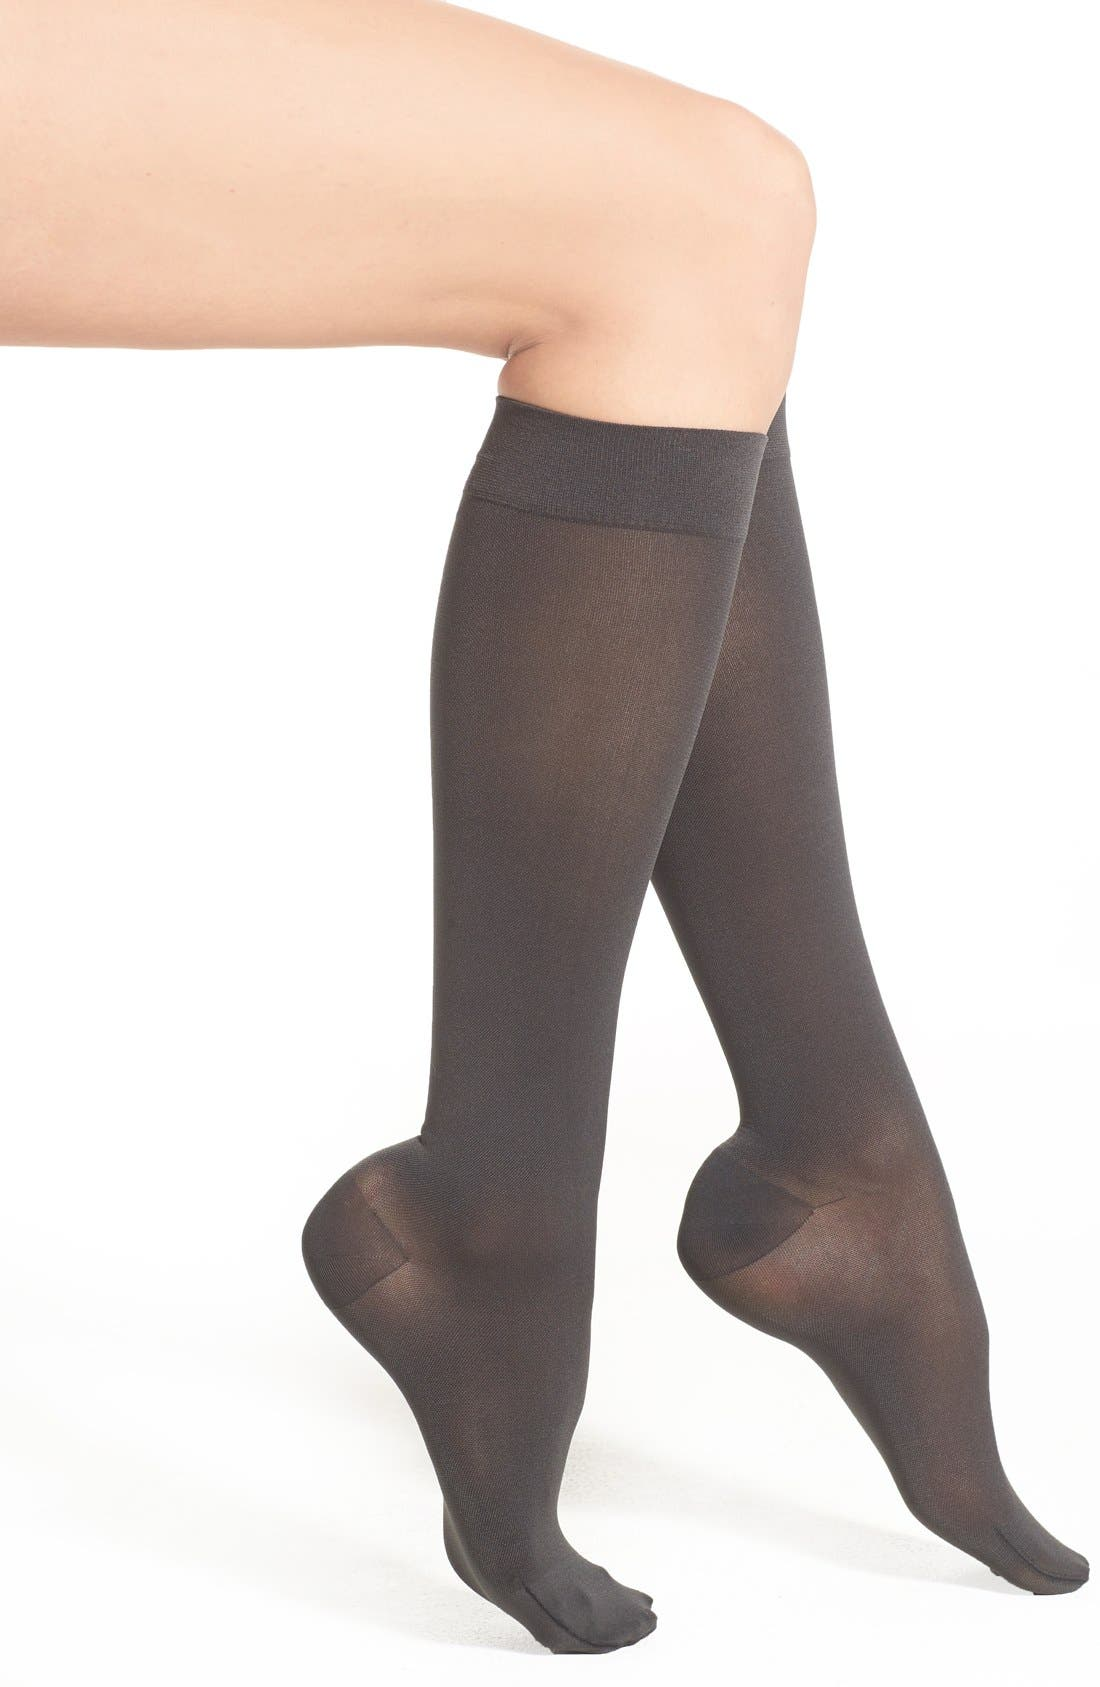 'Headliner' Compression Knee High Socks,                             Main thumbnail 1, color,                             Graphite